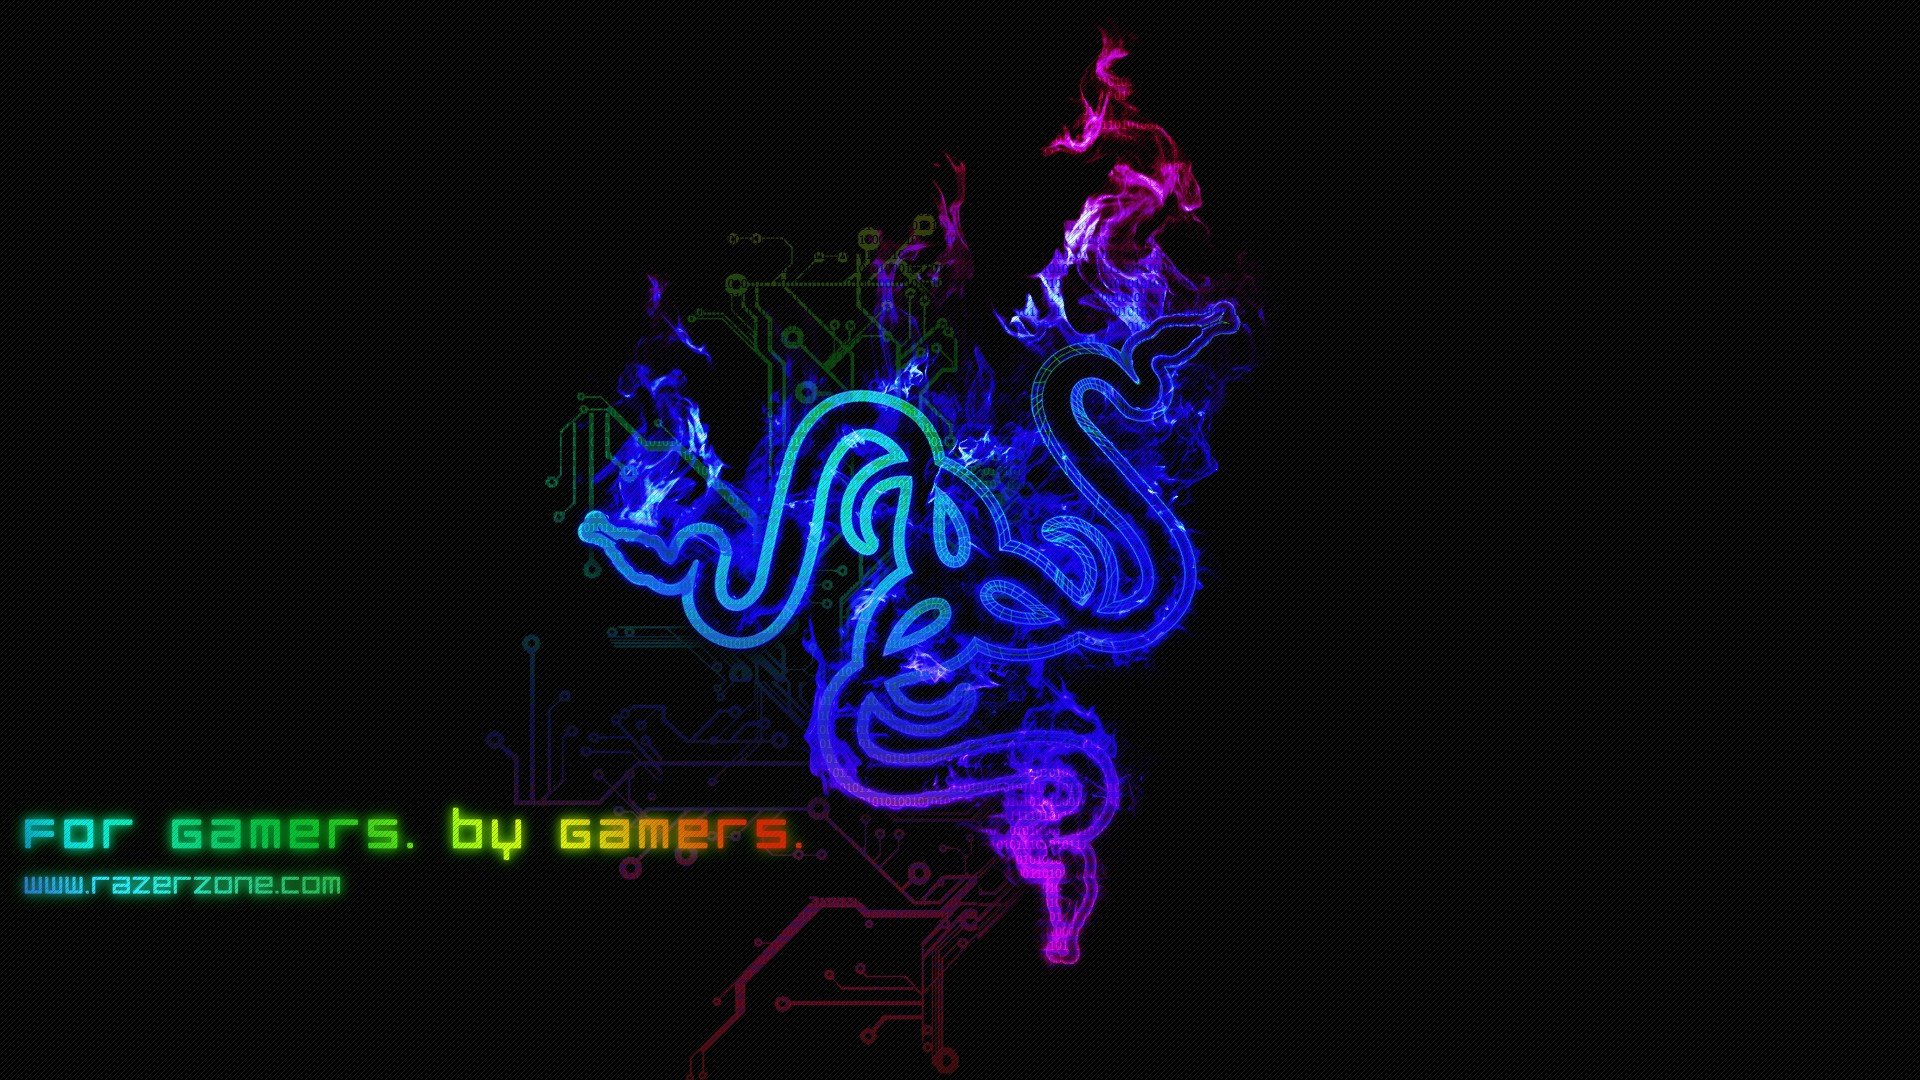 10 Best Cool Backgrounds For Gaming Full Hd 1920 1080 For: Razer Wallpapers, Pictures, Images